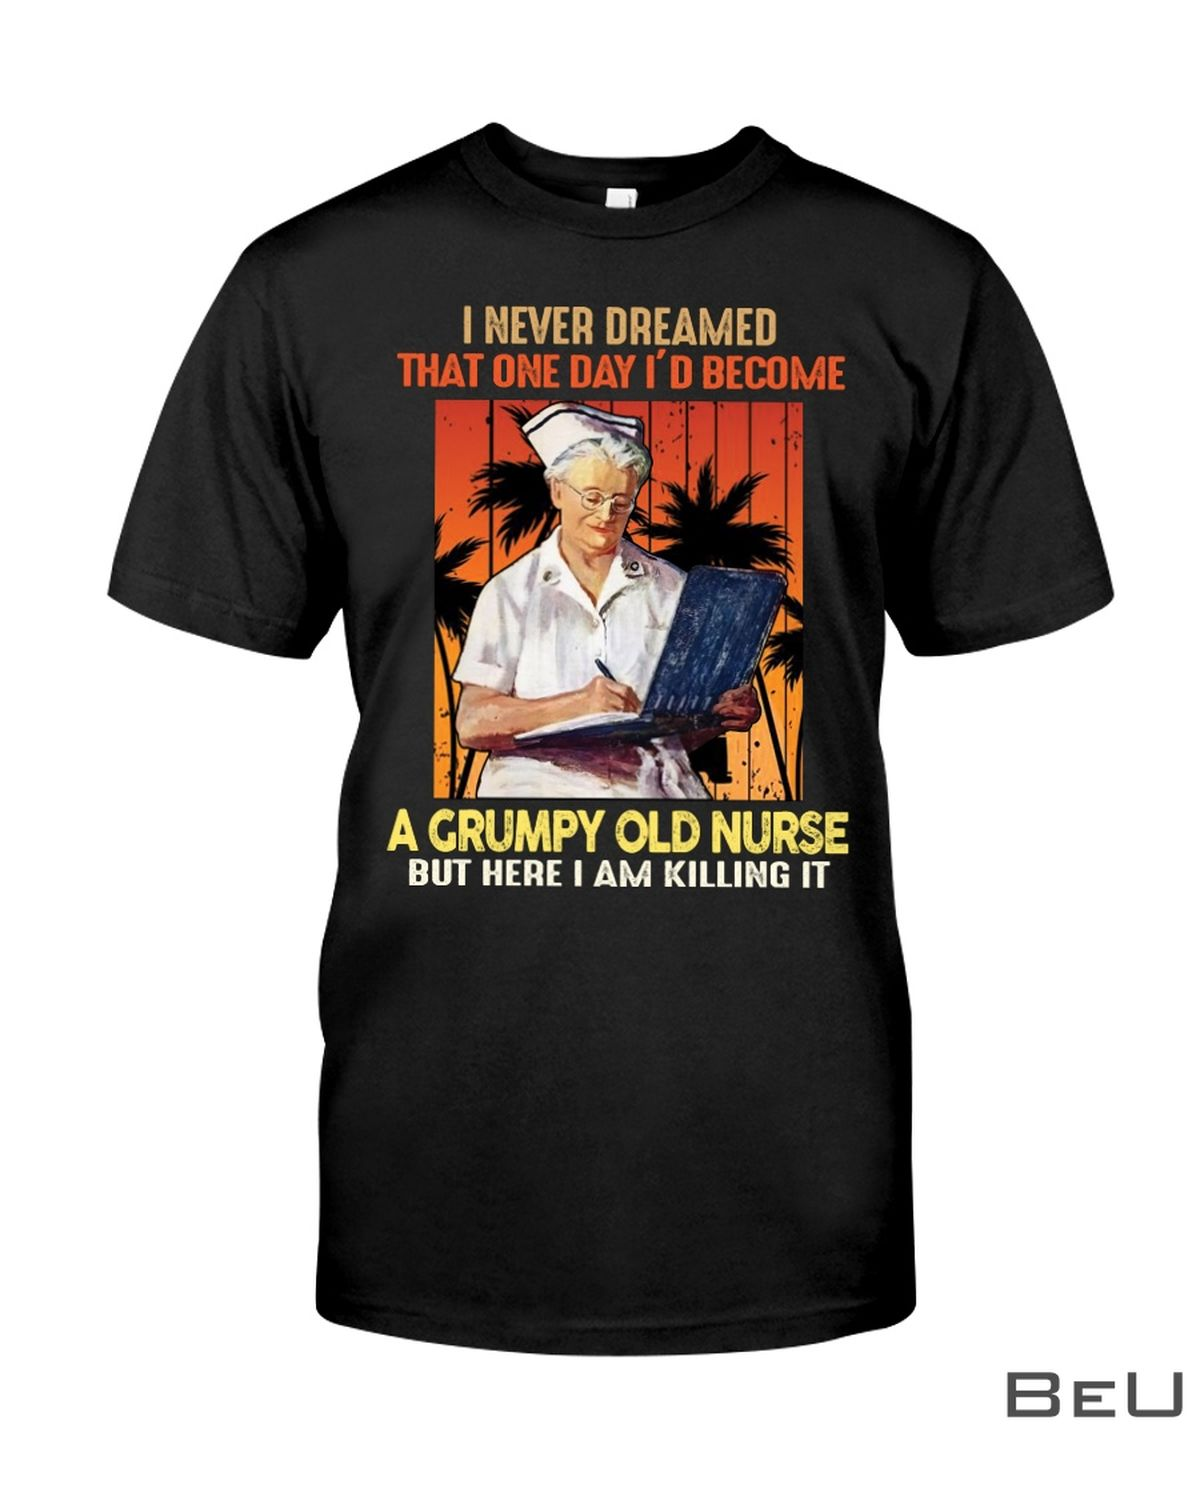 I Never Dreamed That One Day I'd Become A Grumpy Old Nurse But Here I Am Killing It Shirt